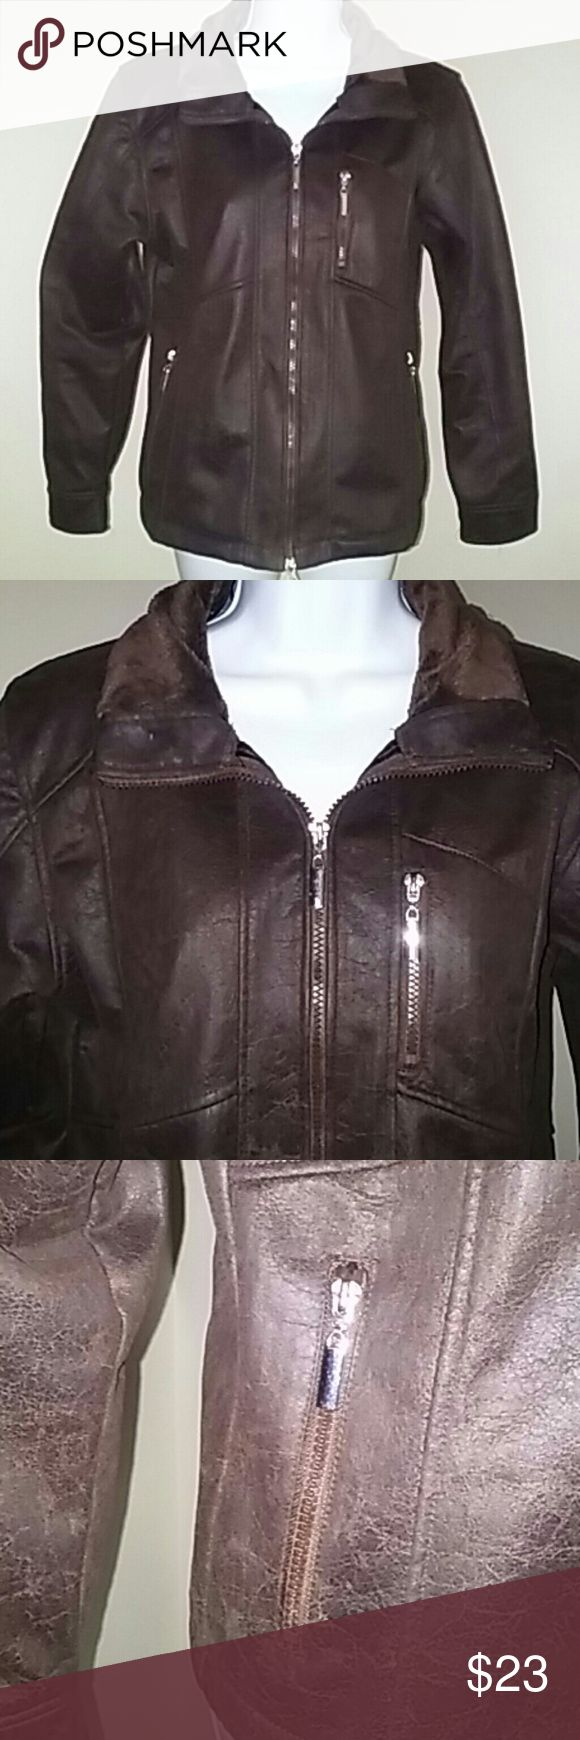 "Wooly Bully Wear Vegan Brown Medium Jacket Zip front super soft 100% poly jacket in a rich chocolate brown.  Machine wash. Outside is faux suede. Collar faux fur. Inside lining is super soft. Armpit to armpit flat 21"". Length from back bottom collar 22.5"". Three front zipper pockets. Wooly Bully Wear Jackets & Coats Utility Jackets"